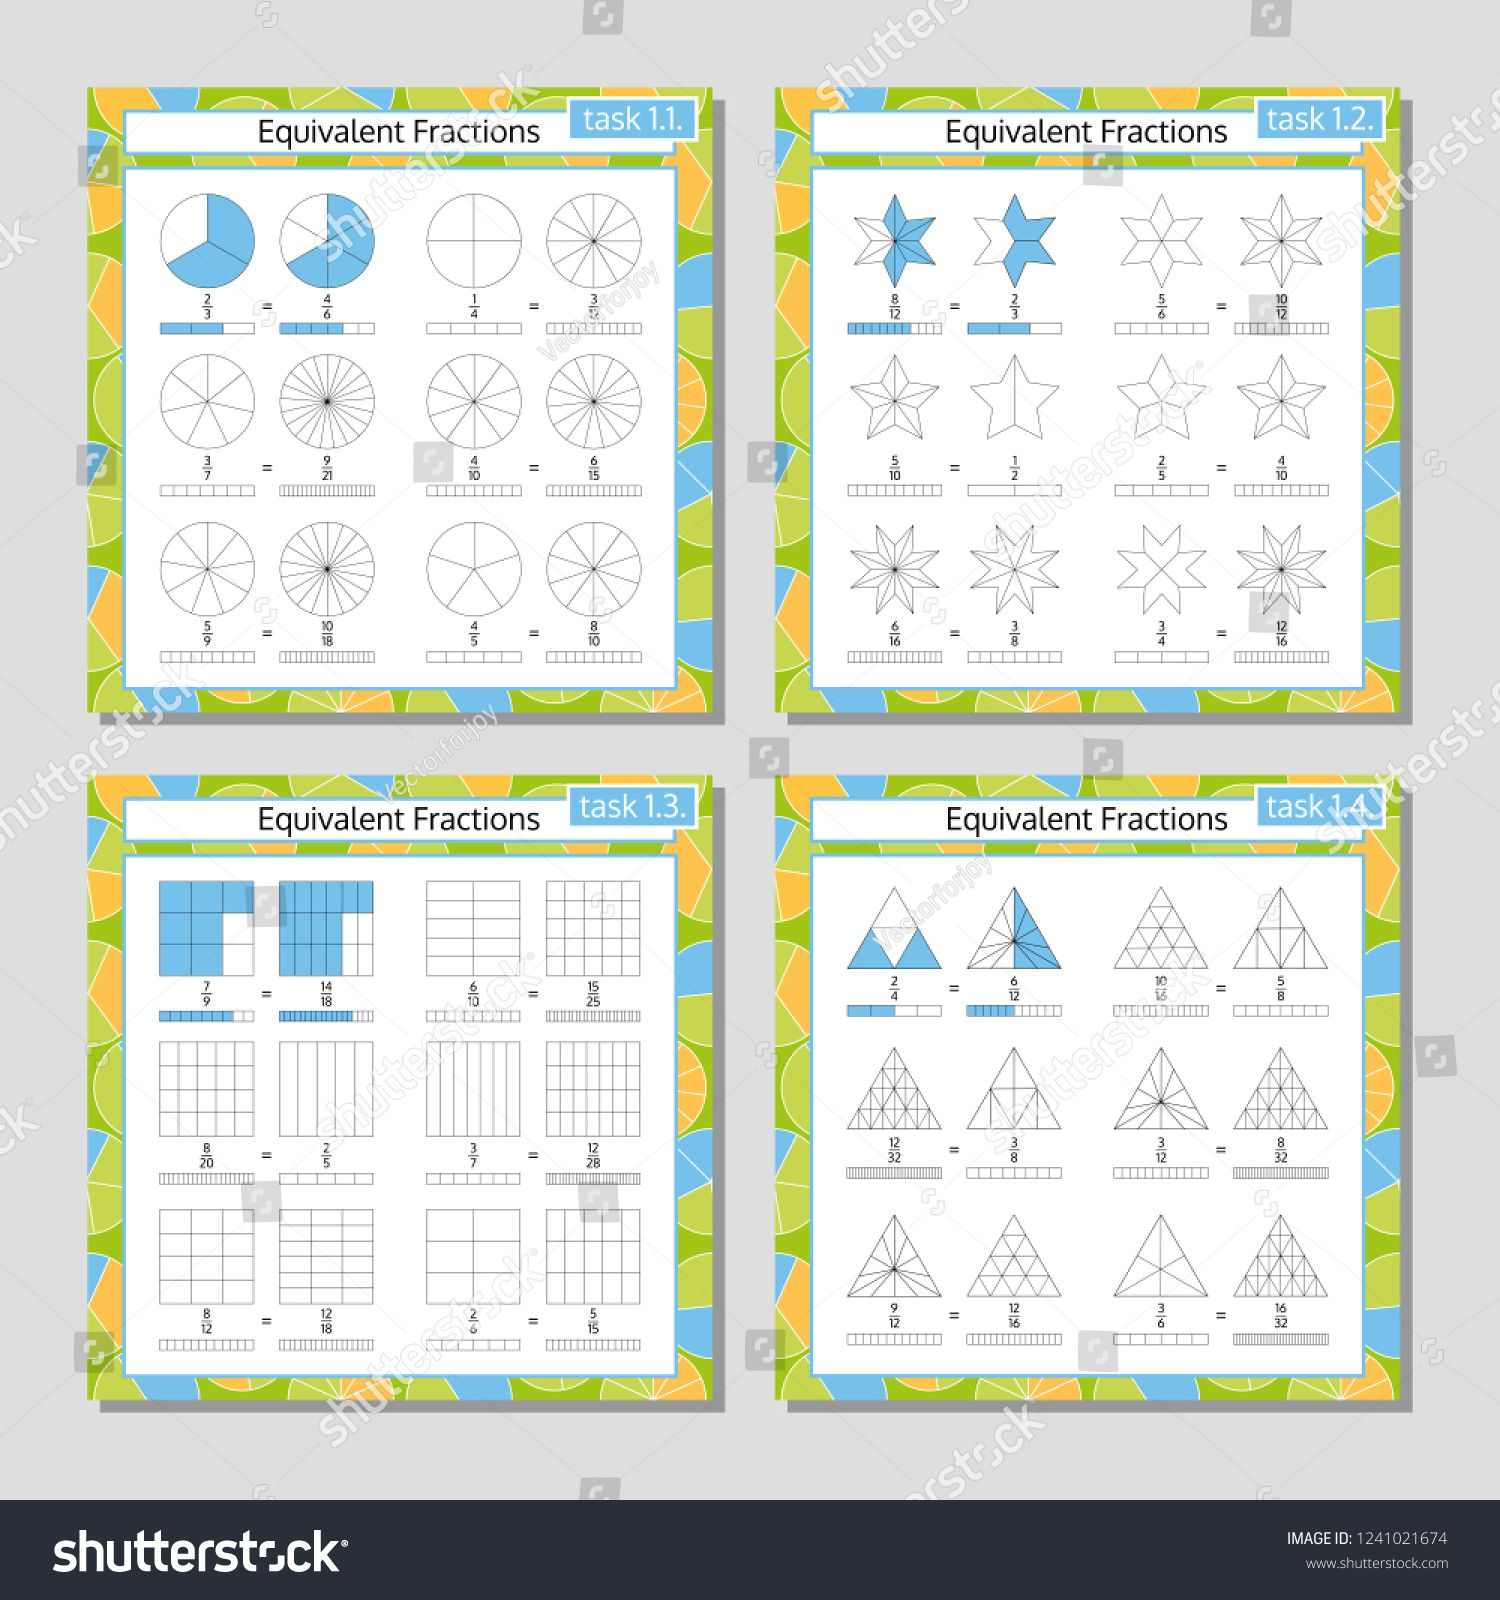 Equivalent Fractions Mathematical Worksheet Set Coloring